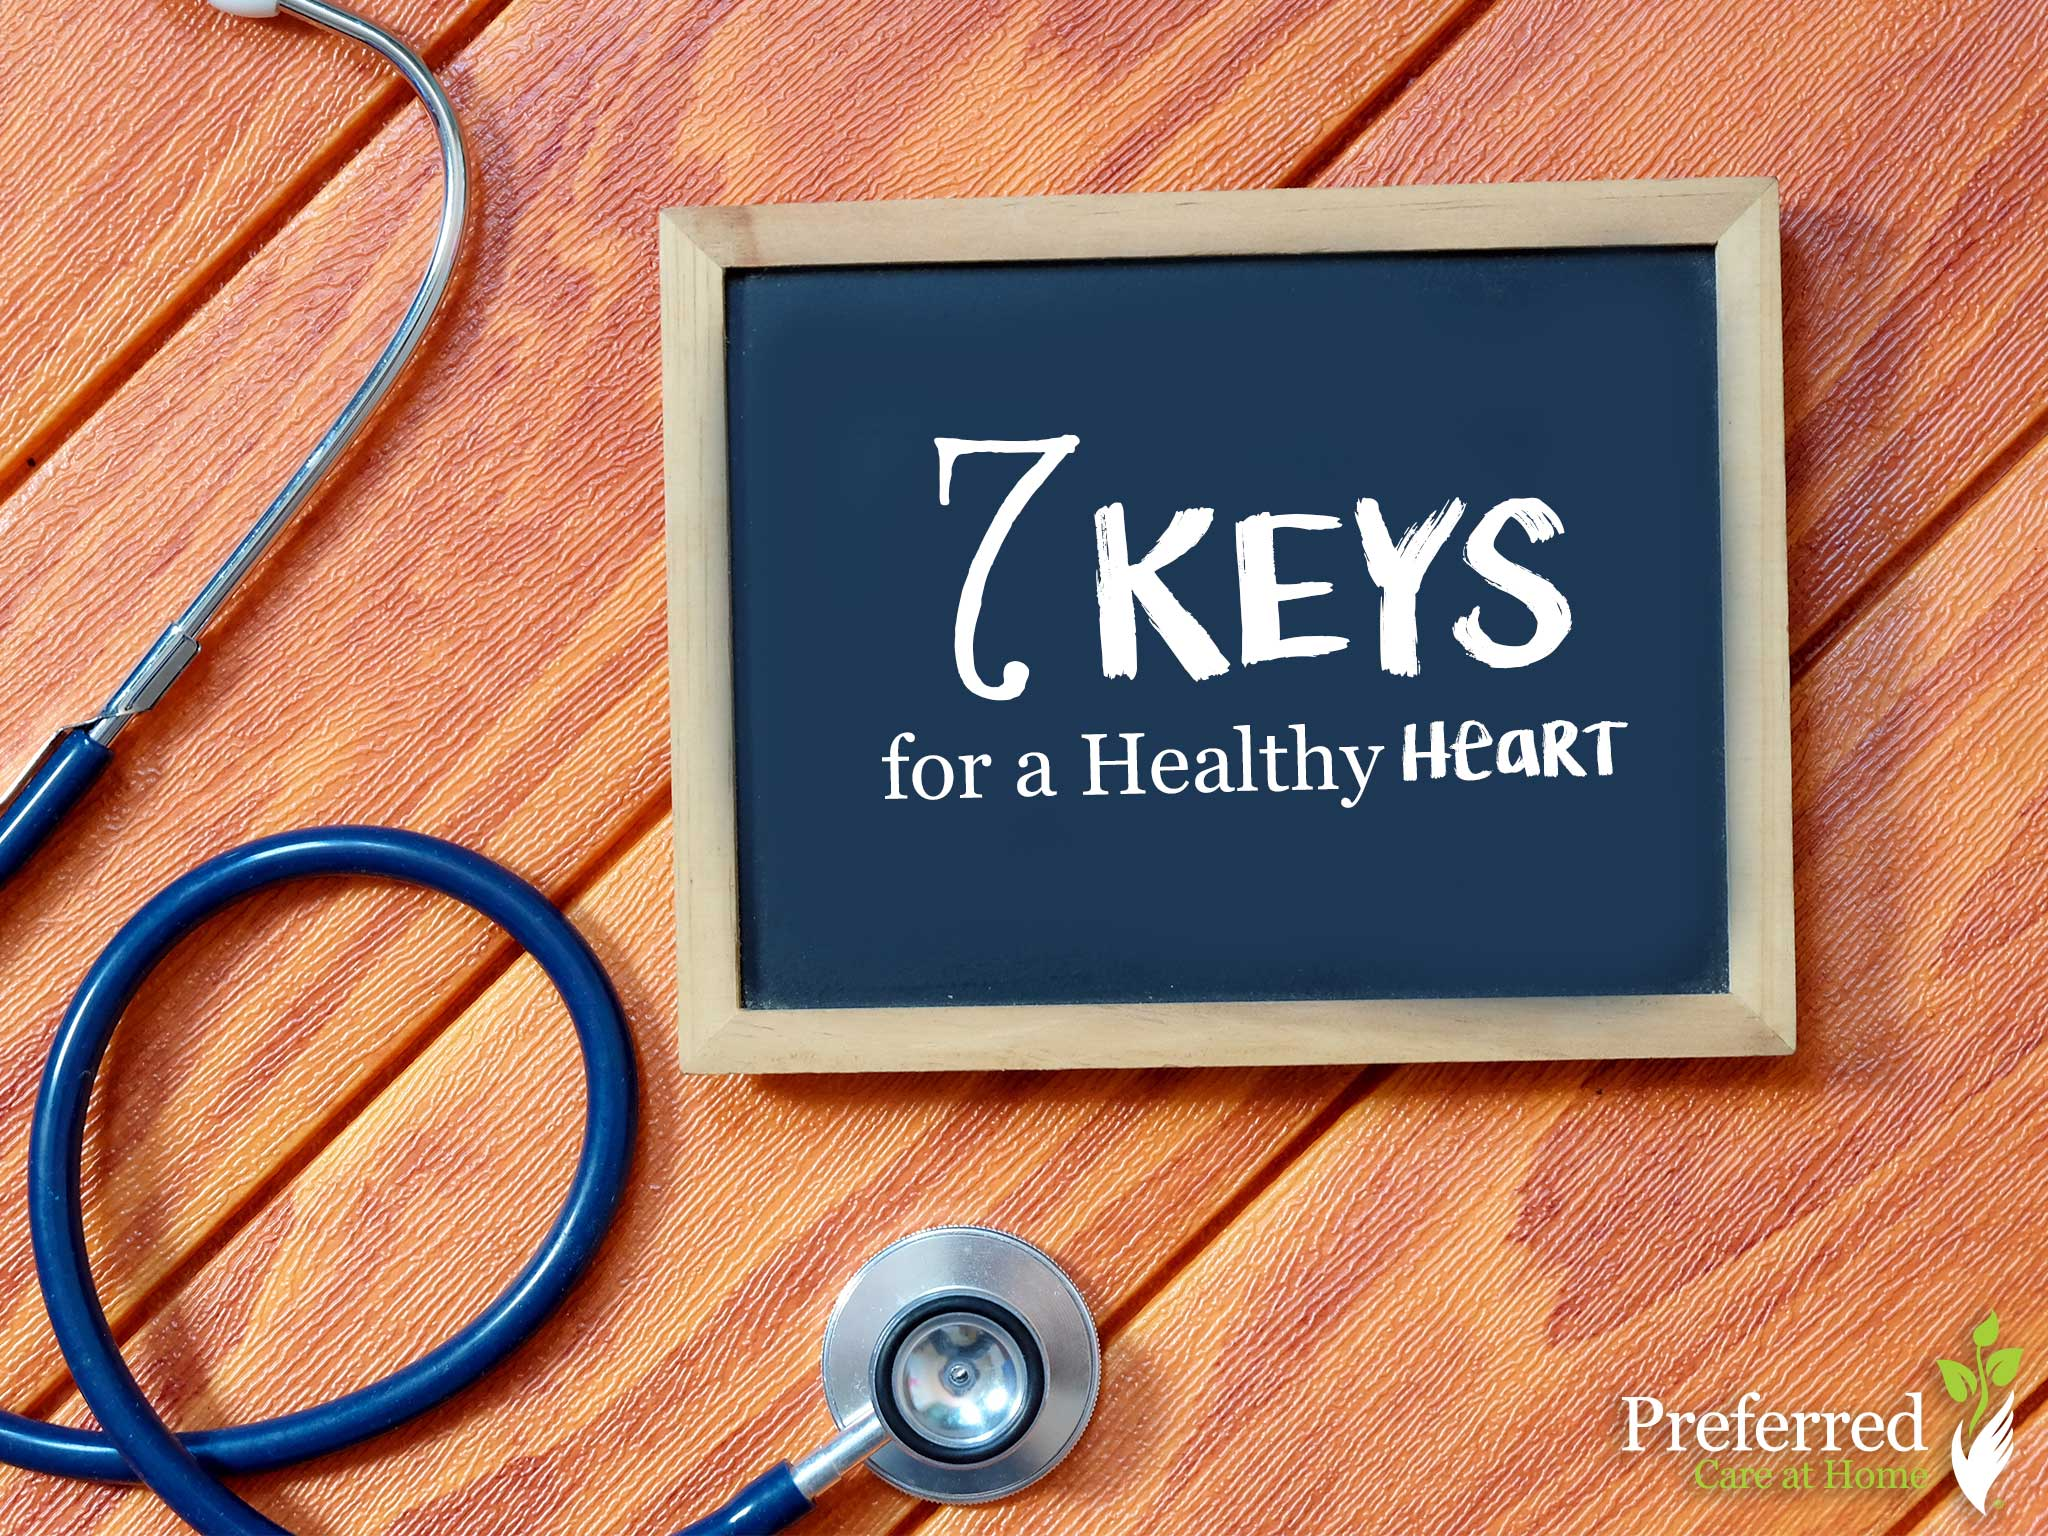 Combatting Heart Disease: 7 Keys to a Healthy Heart